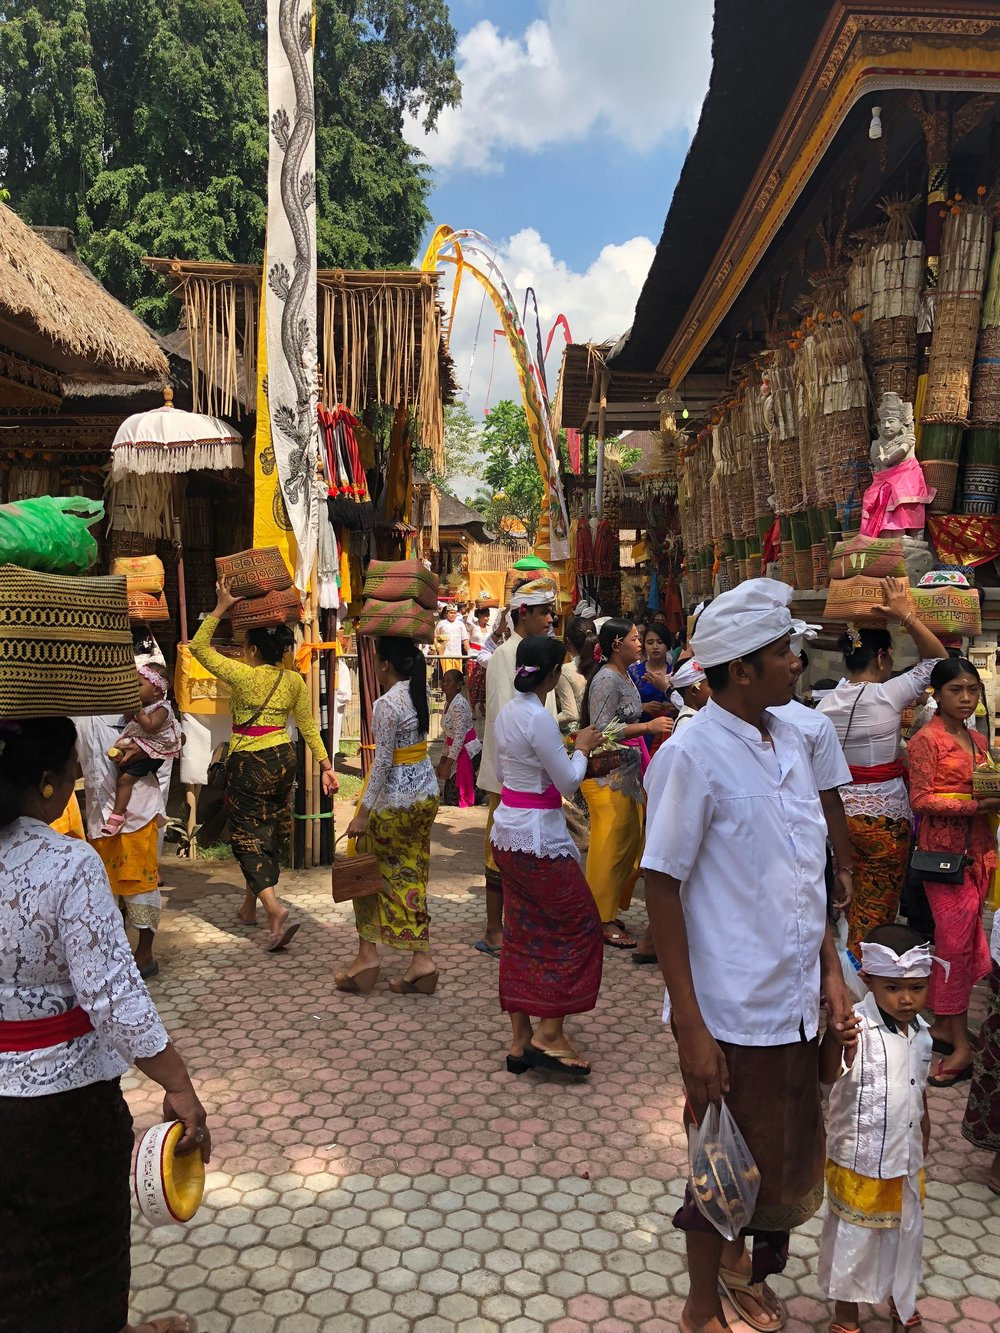 The vast, bustling temple complex evokes the feel of a village market